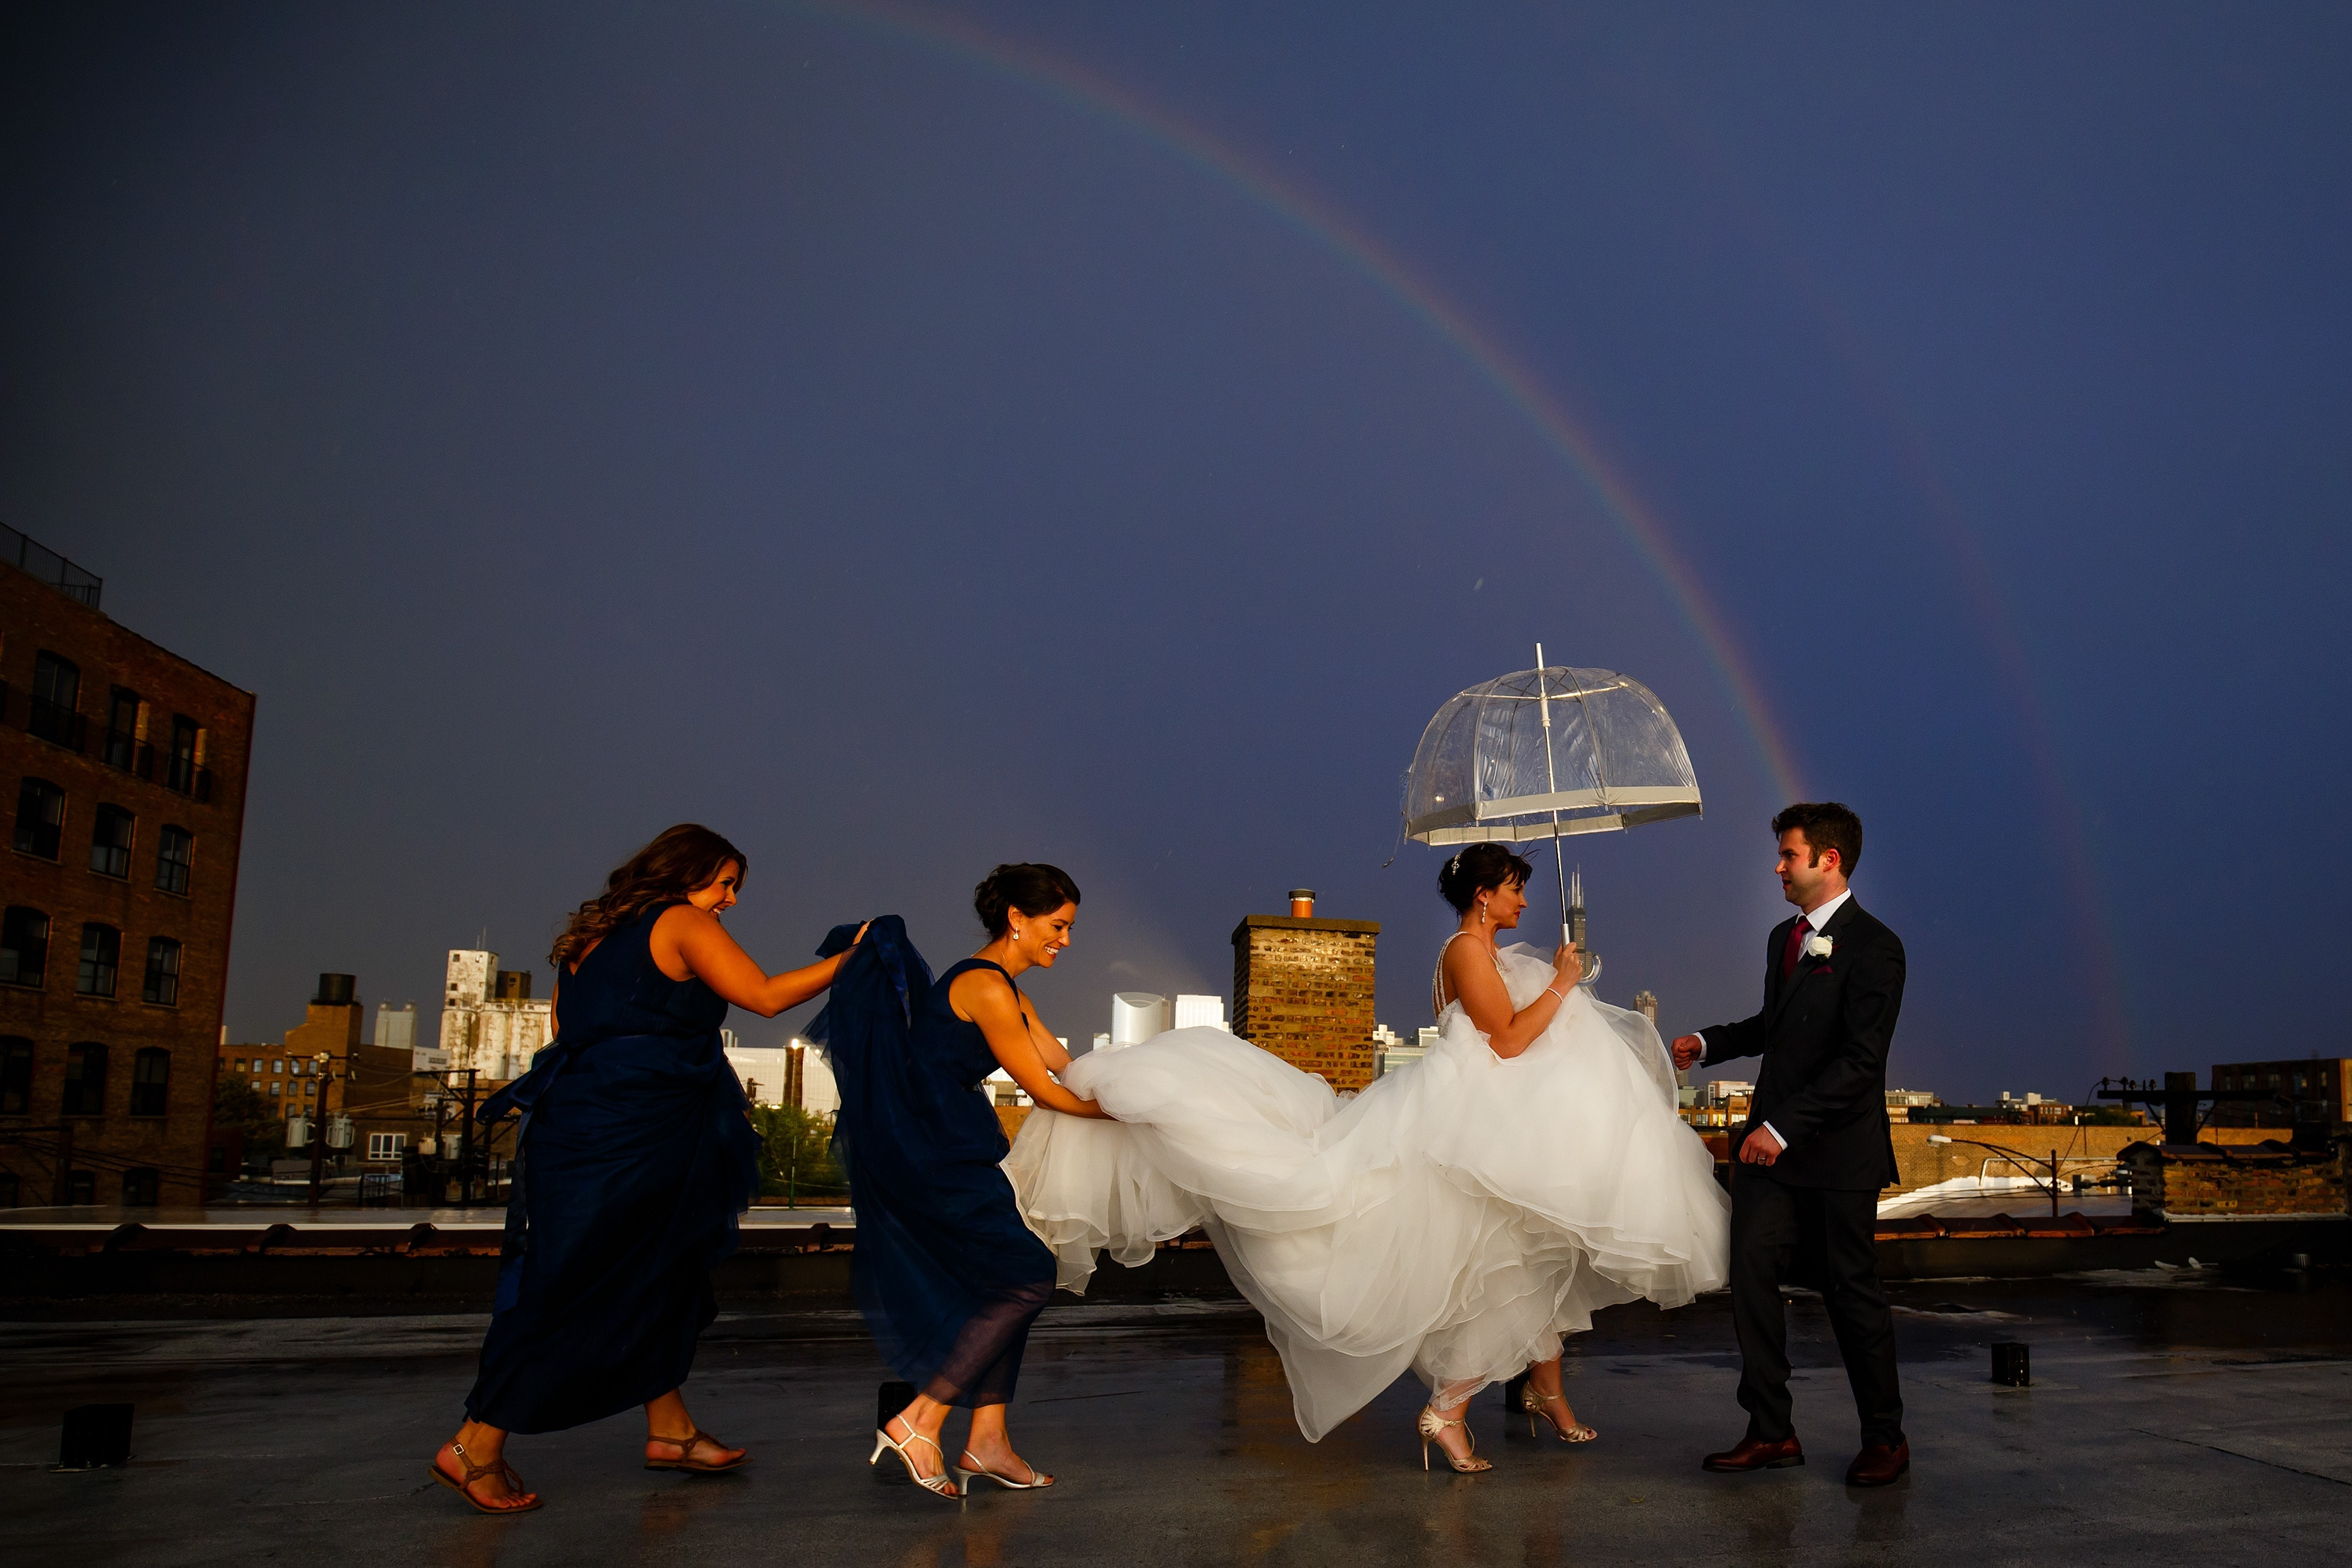 Chelsea gets some help with her dress on the rooftop above Room 1520 as rain falls and a rainbow is emerges in the sky